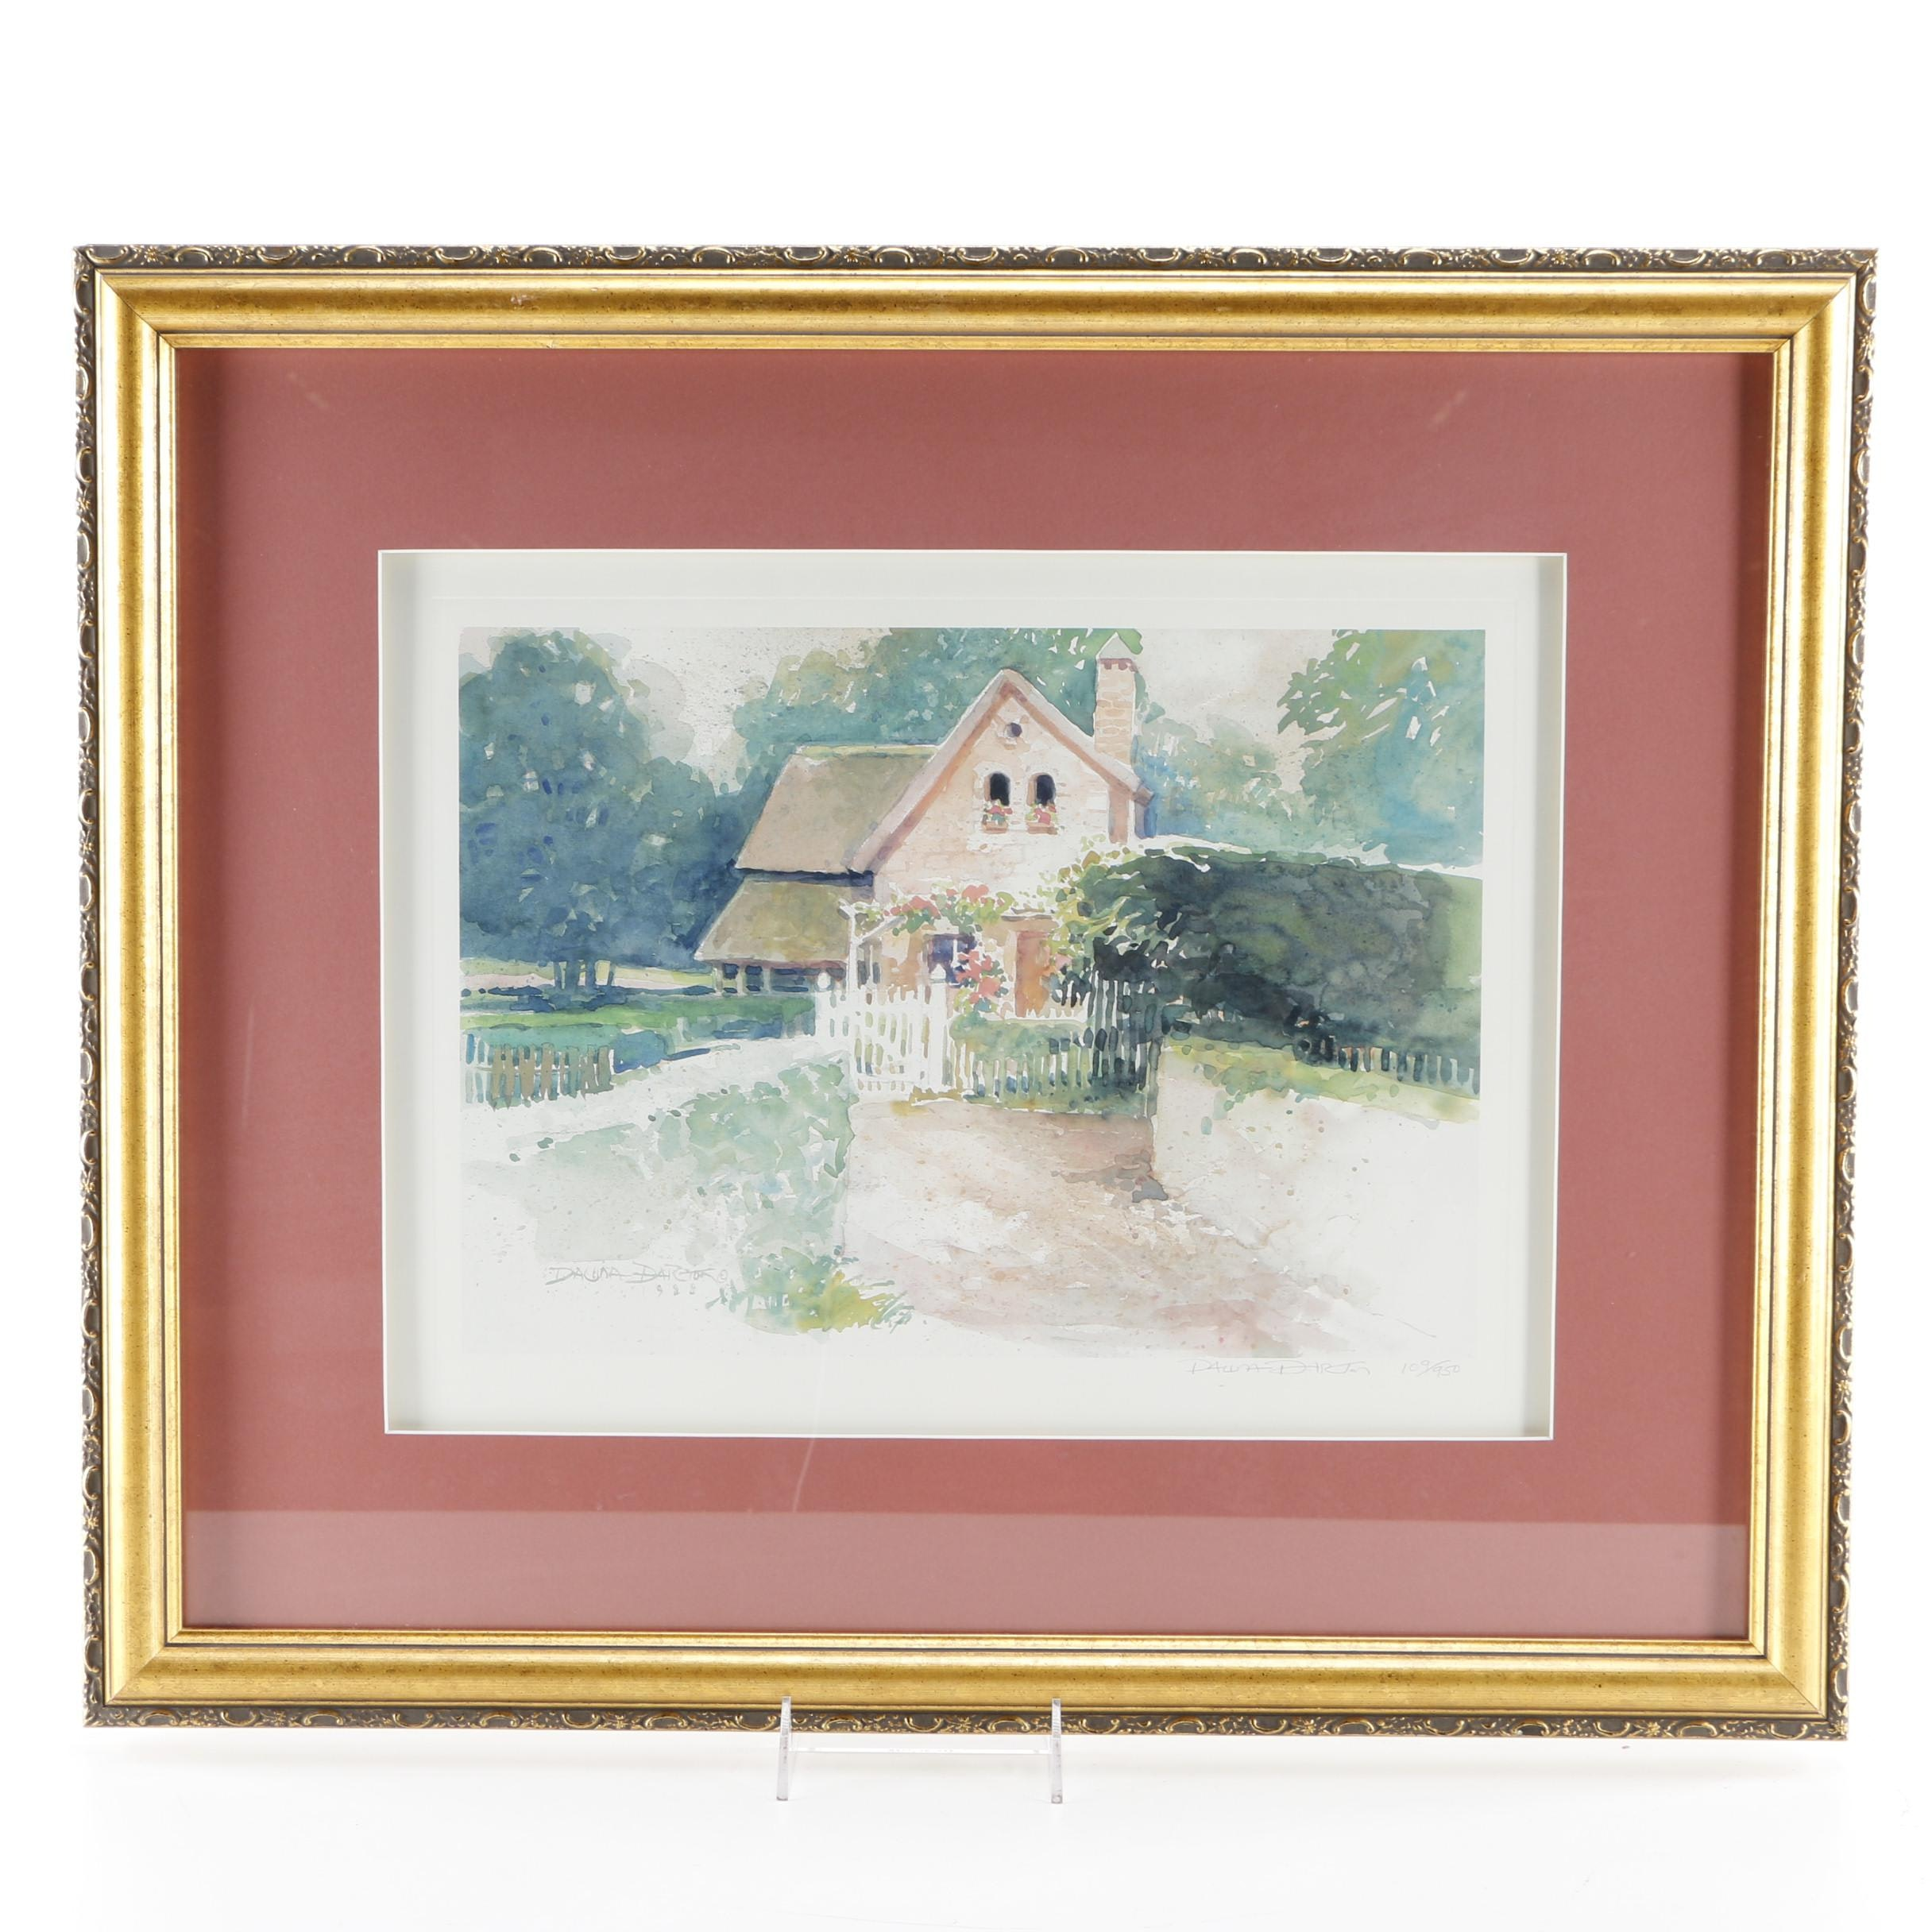 Dawna Barton Signed Limited Edition Offset Lithograph of a Cottage